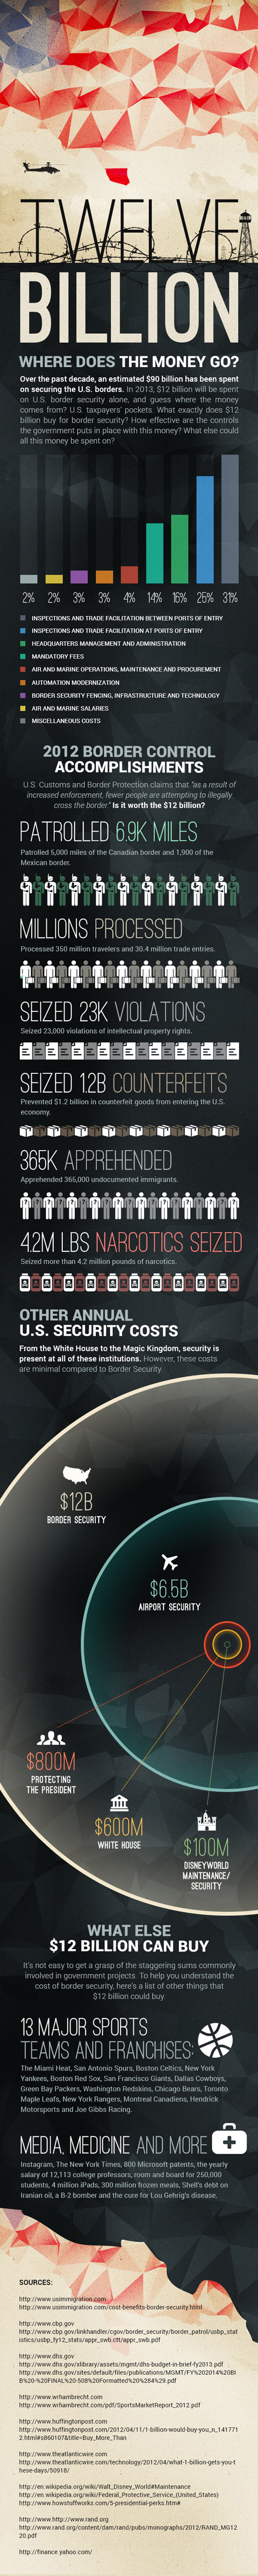 Lavish Spending on U.S. Security